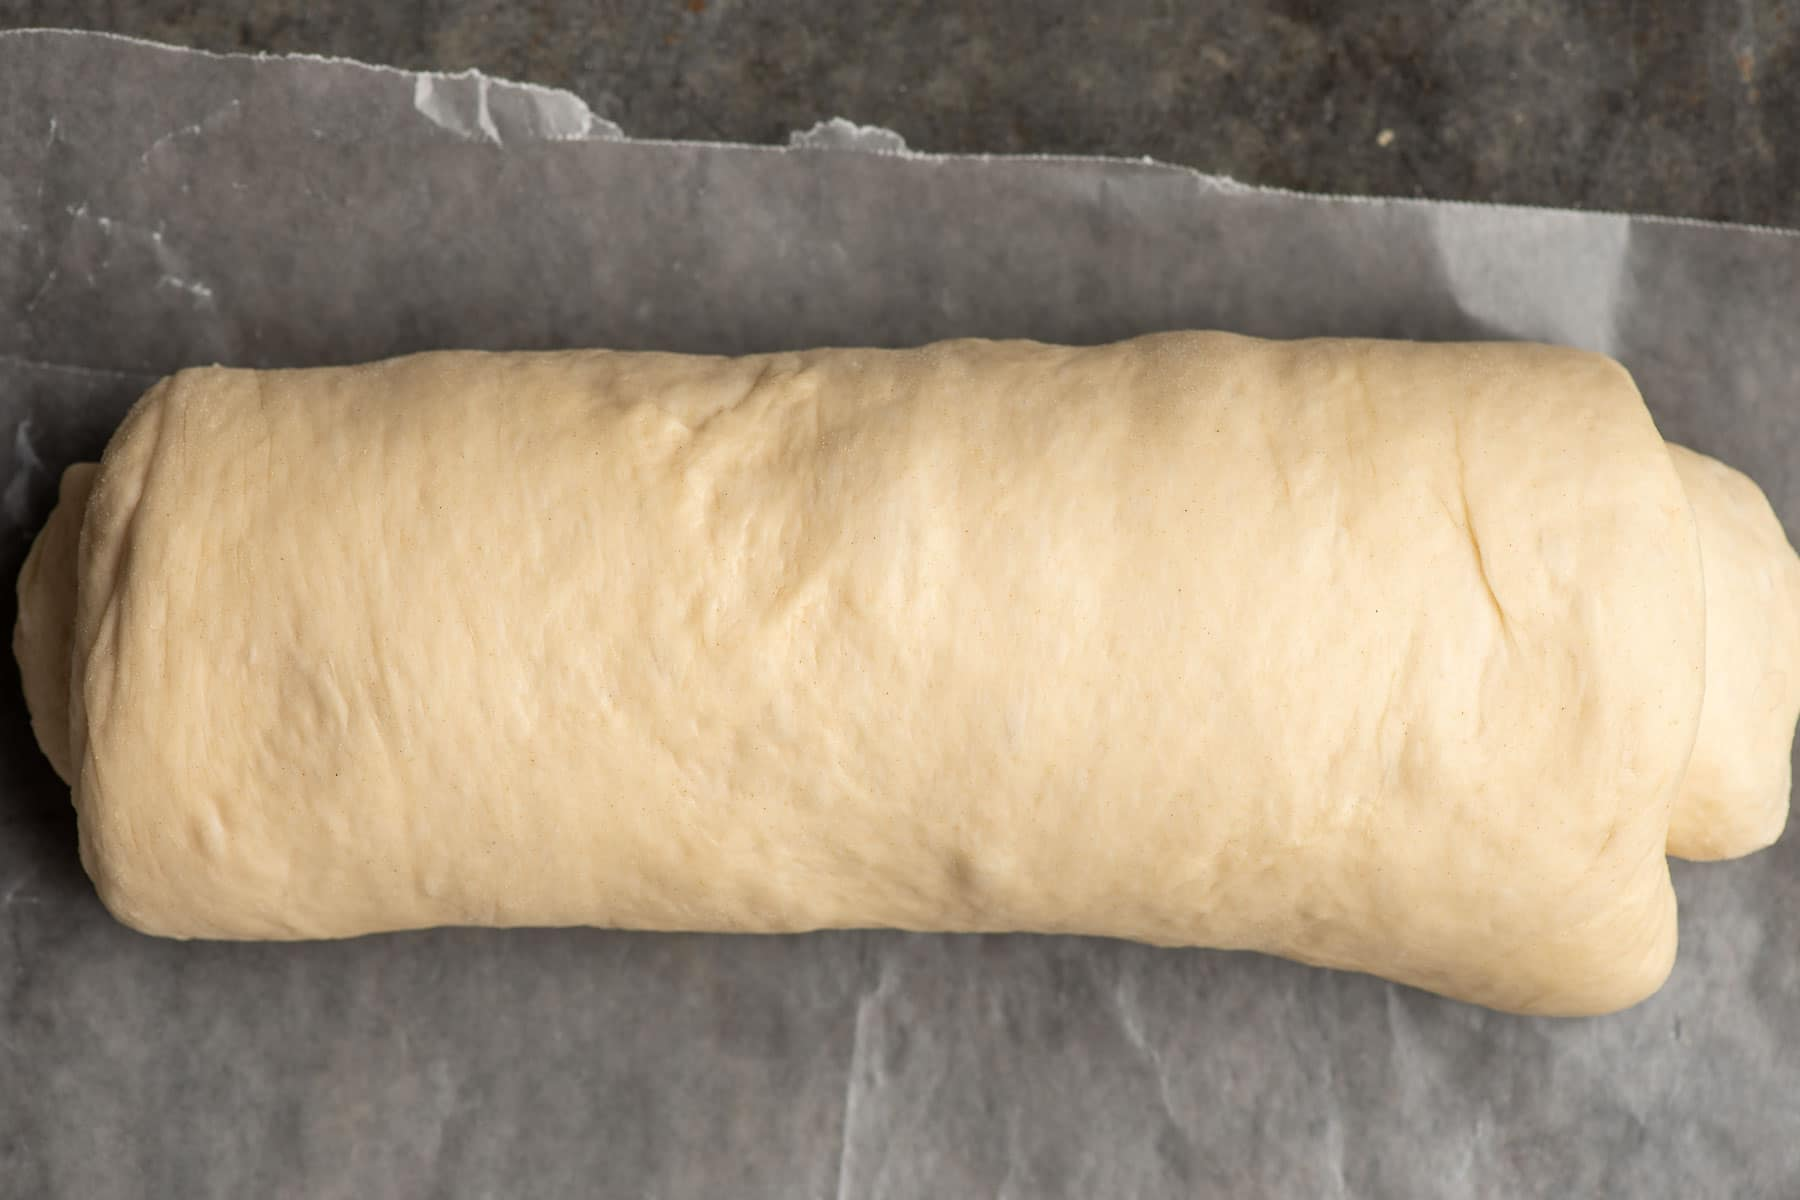 Bread dough rolled up on a piece of parchment paper.